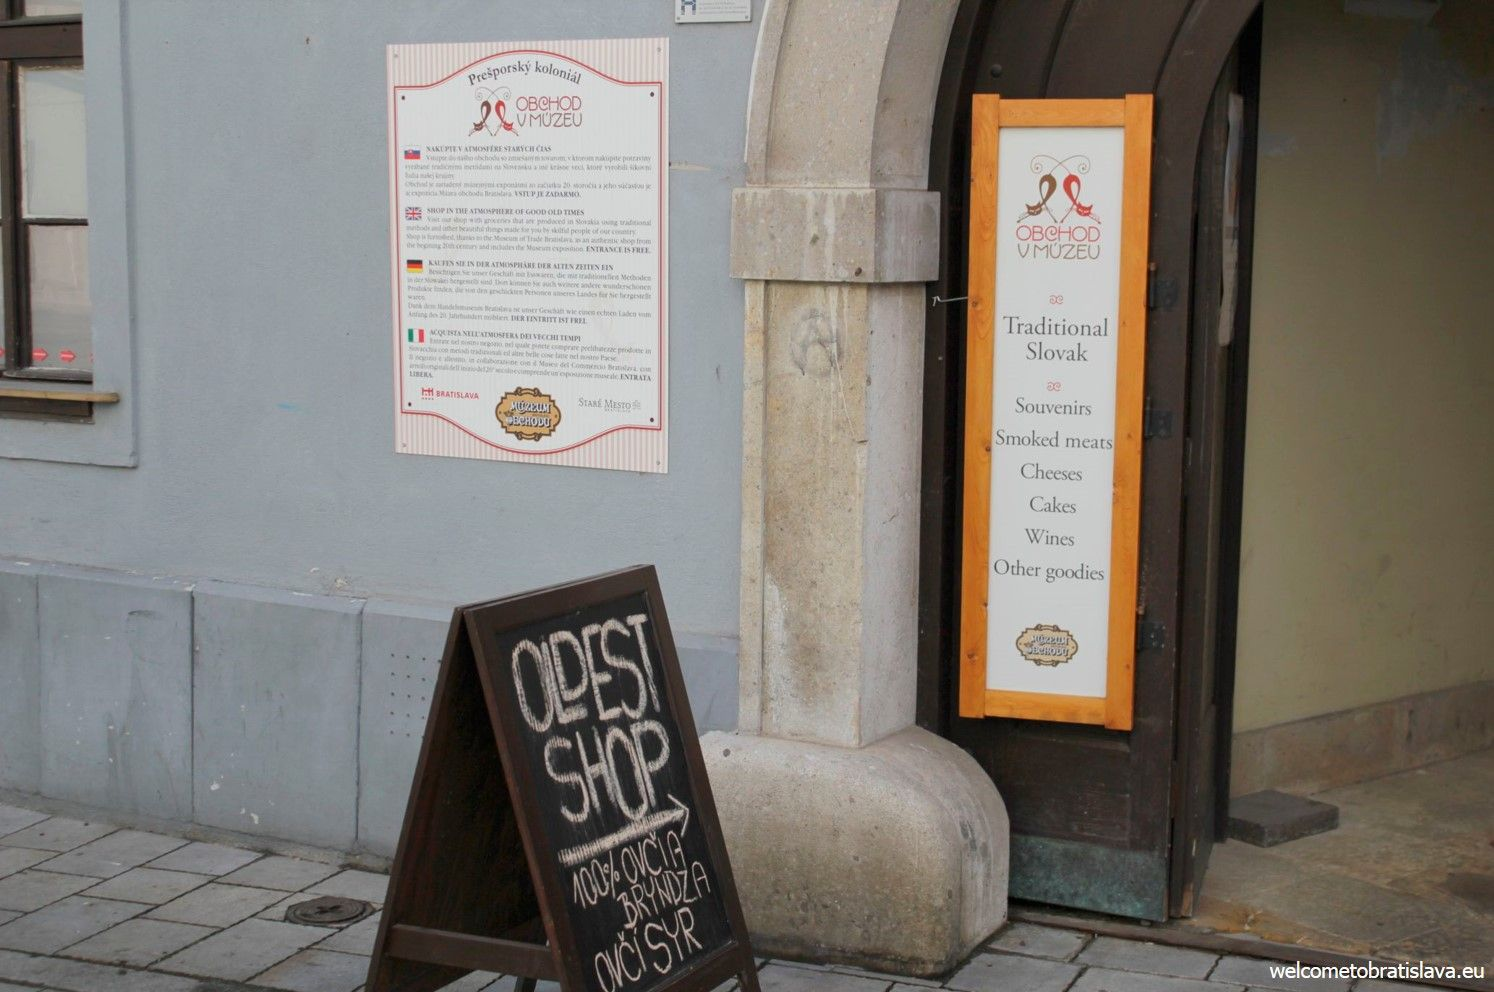 The oldest shop of Bratislava